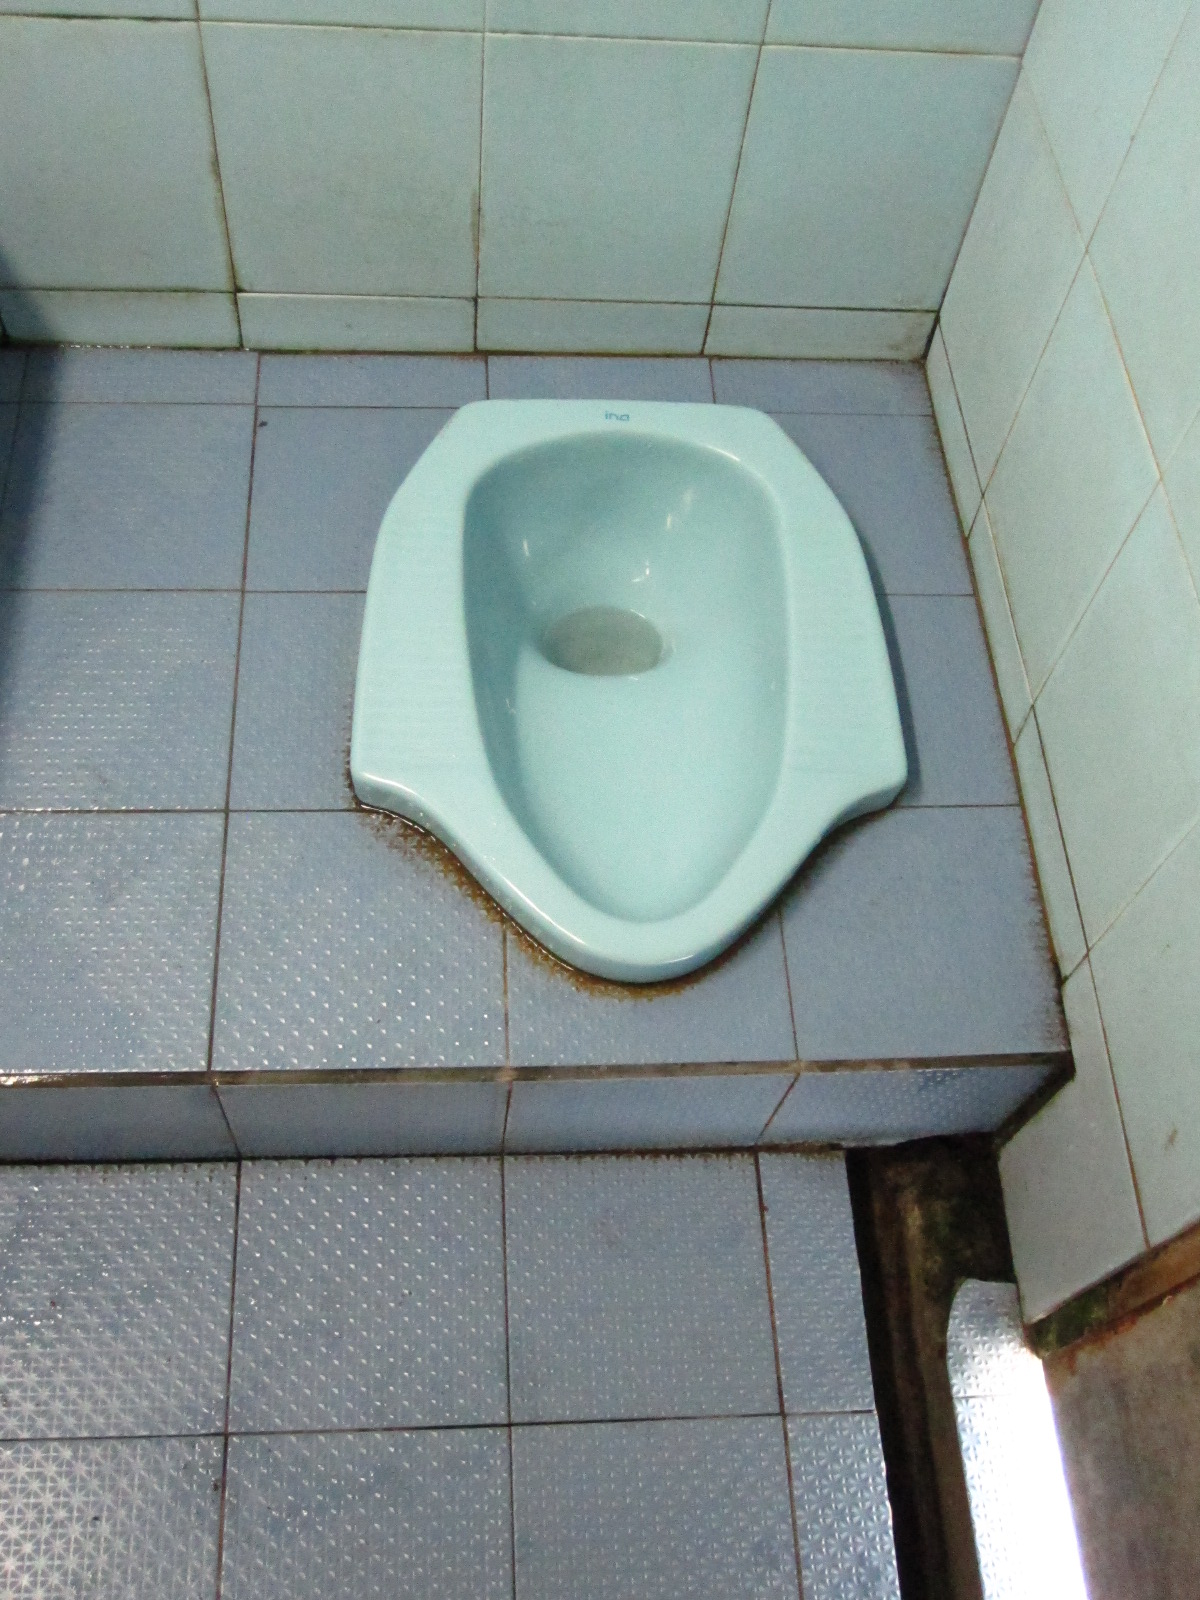 Passenger Conners – The Great International Toilet Ranking System